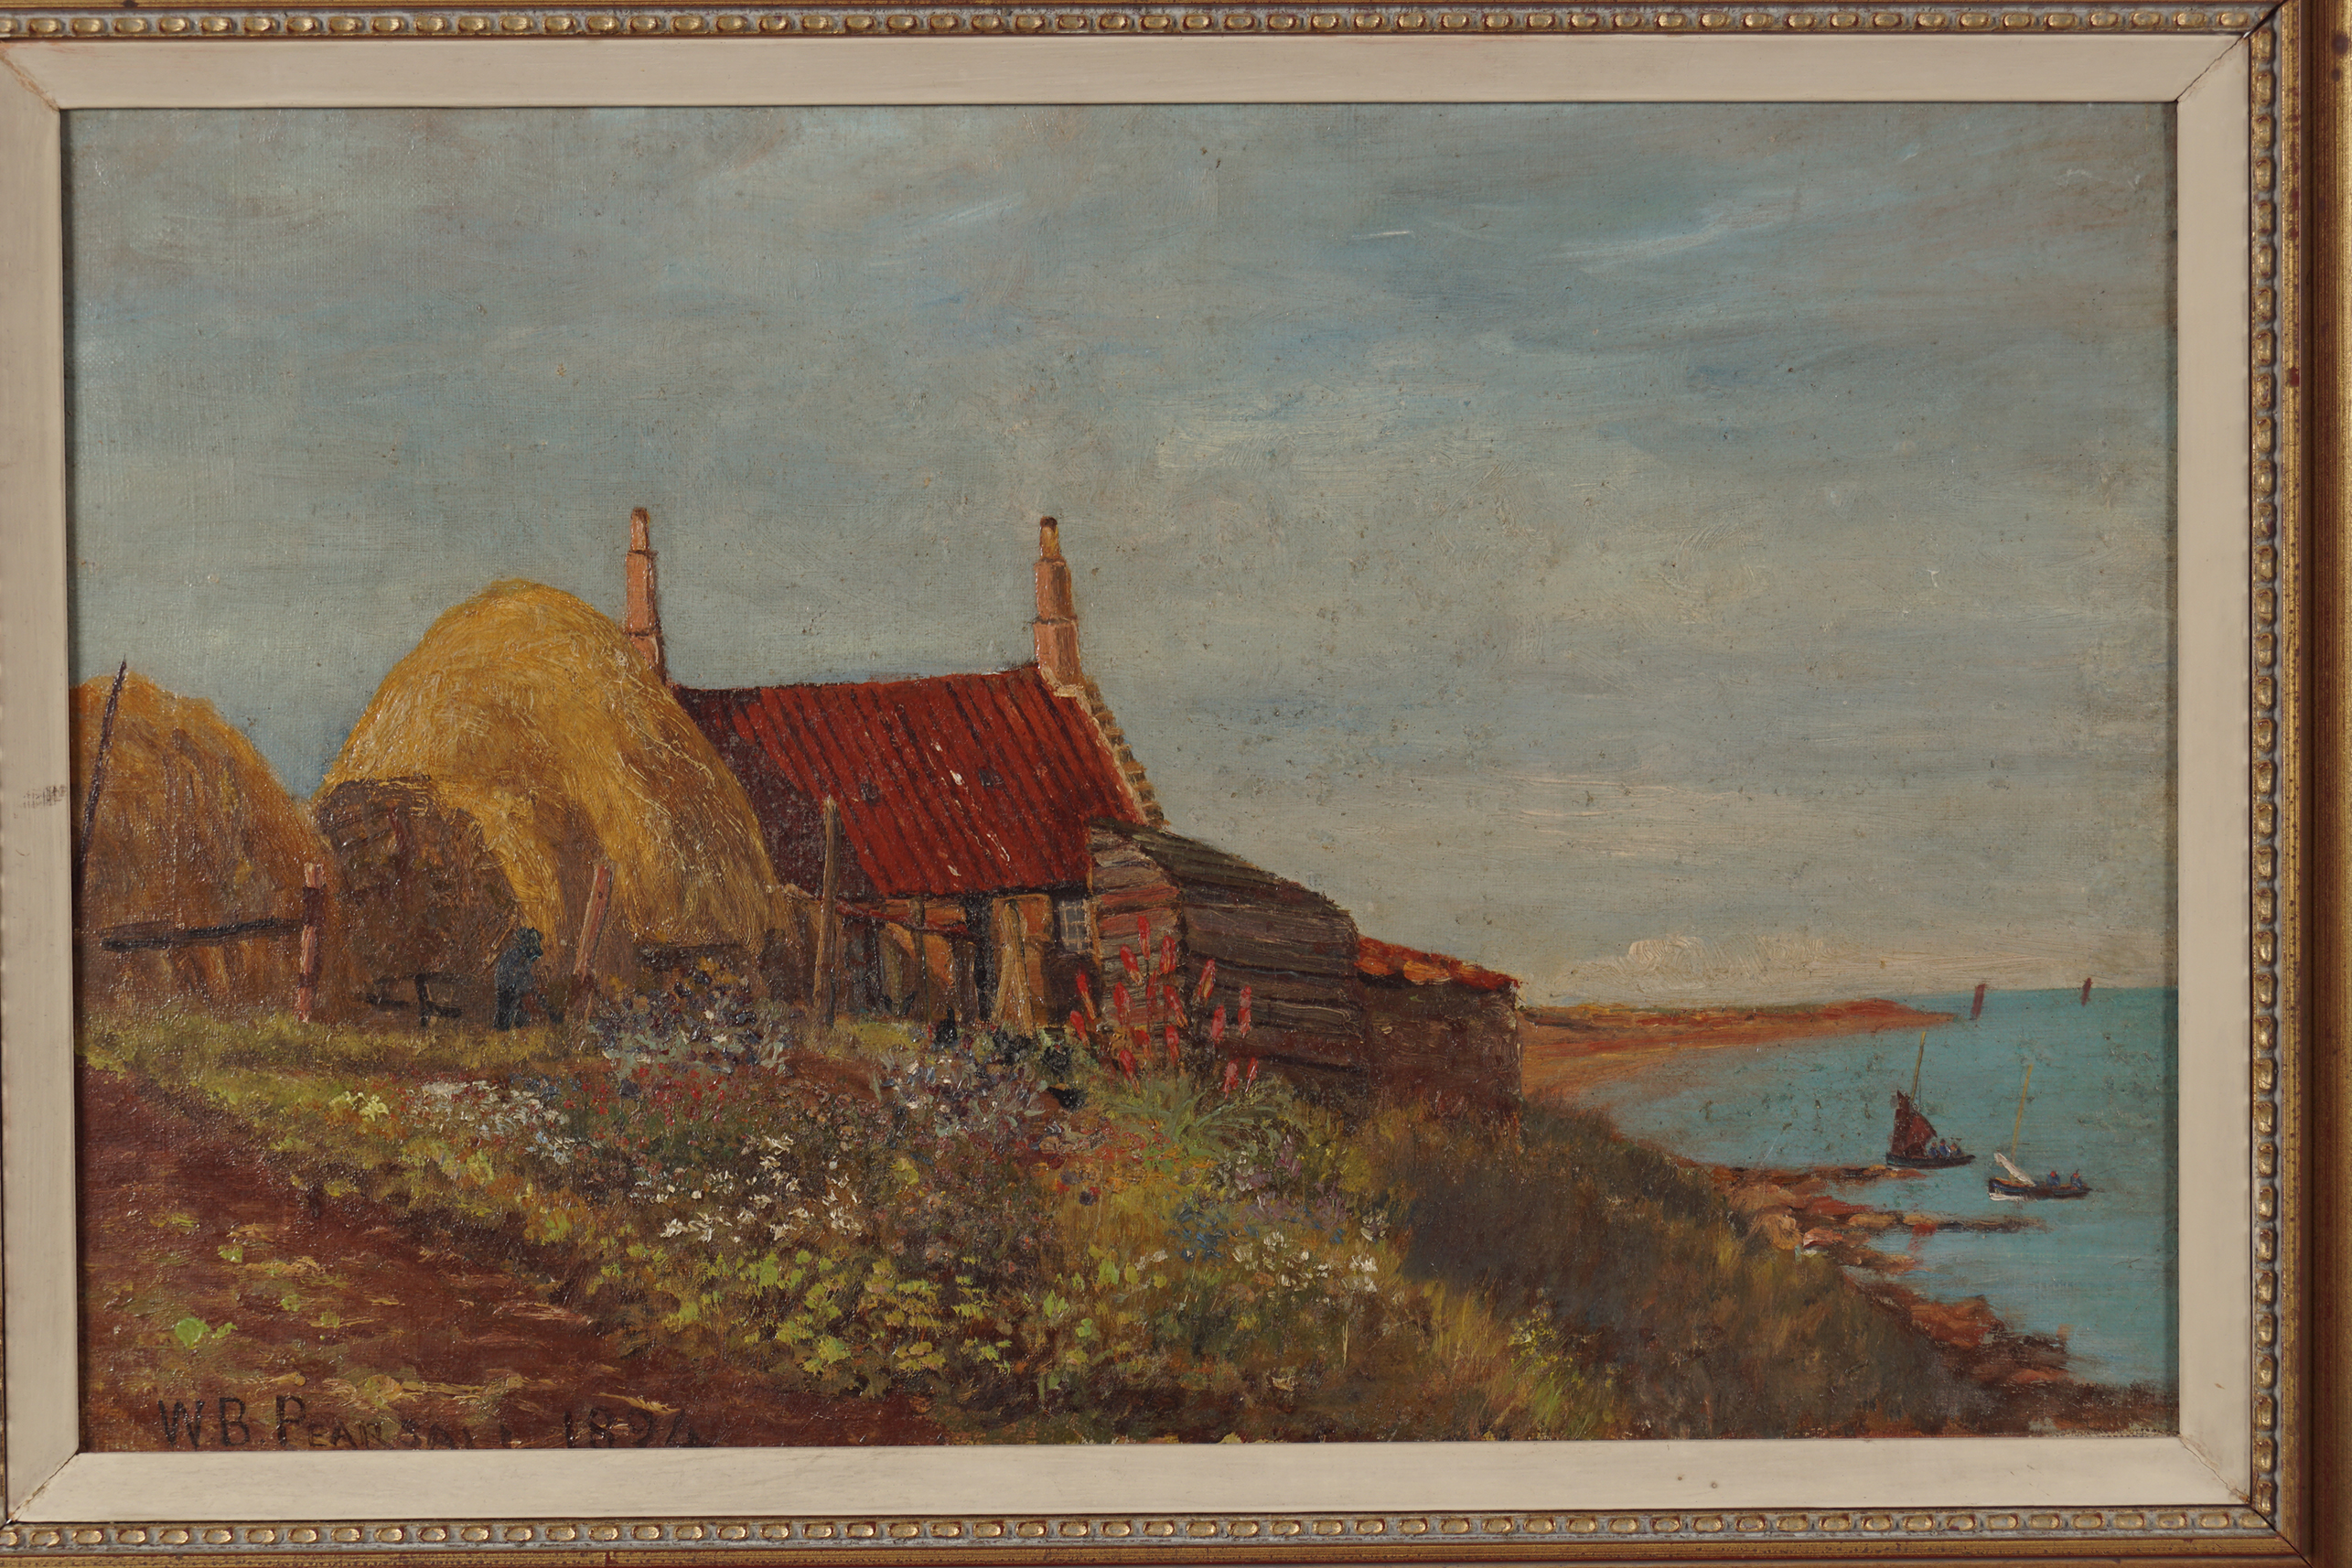 W.B. PEARSALL - Image 2 of 4